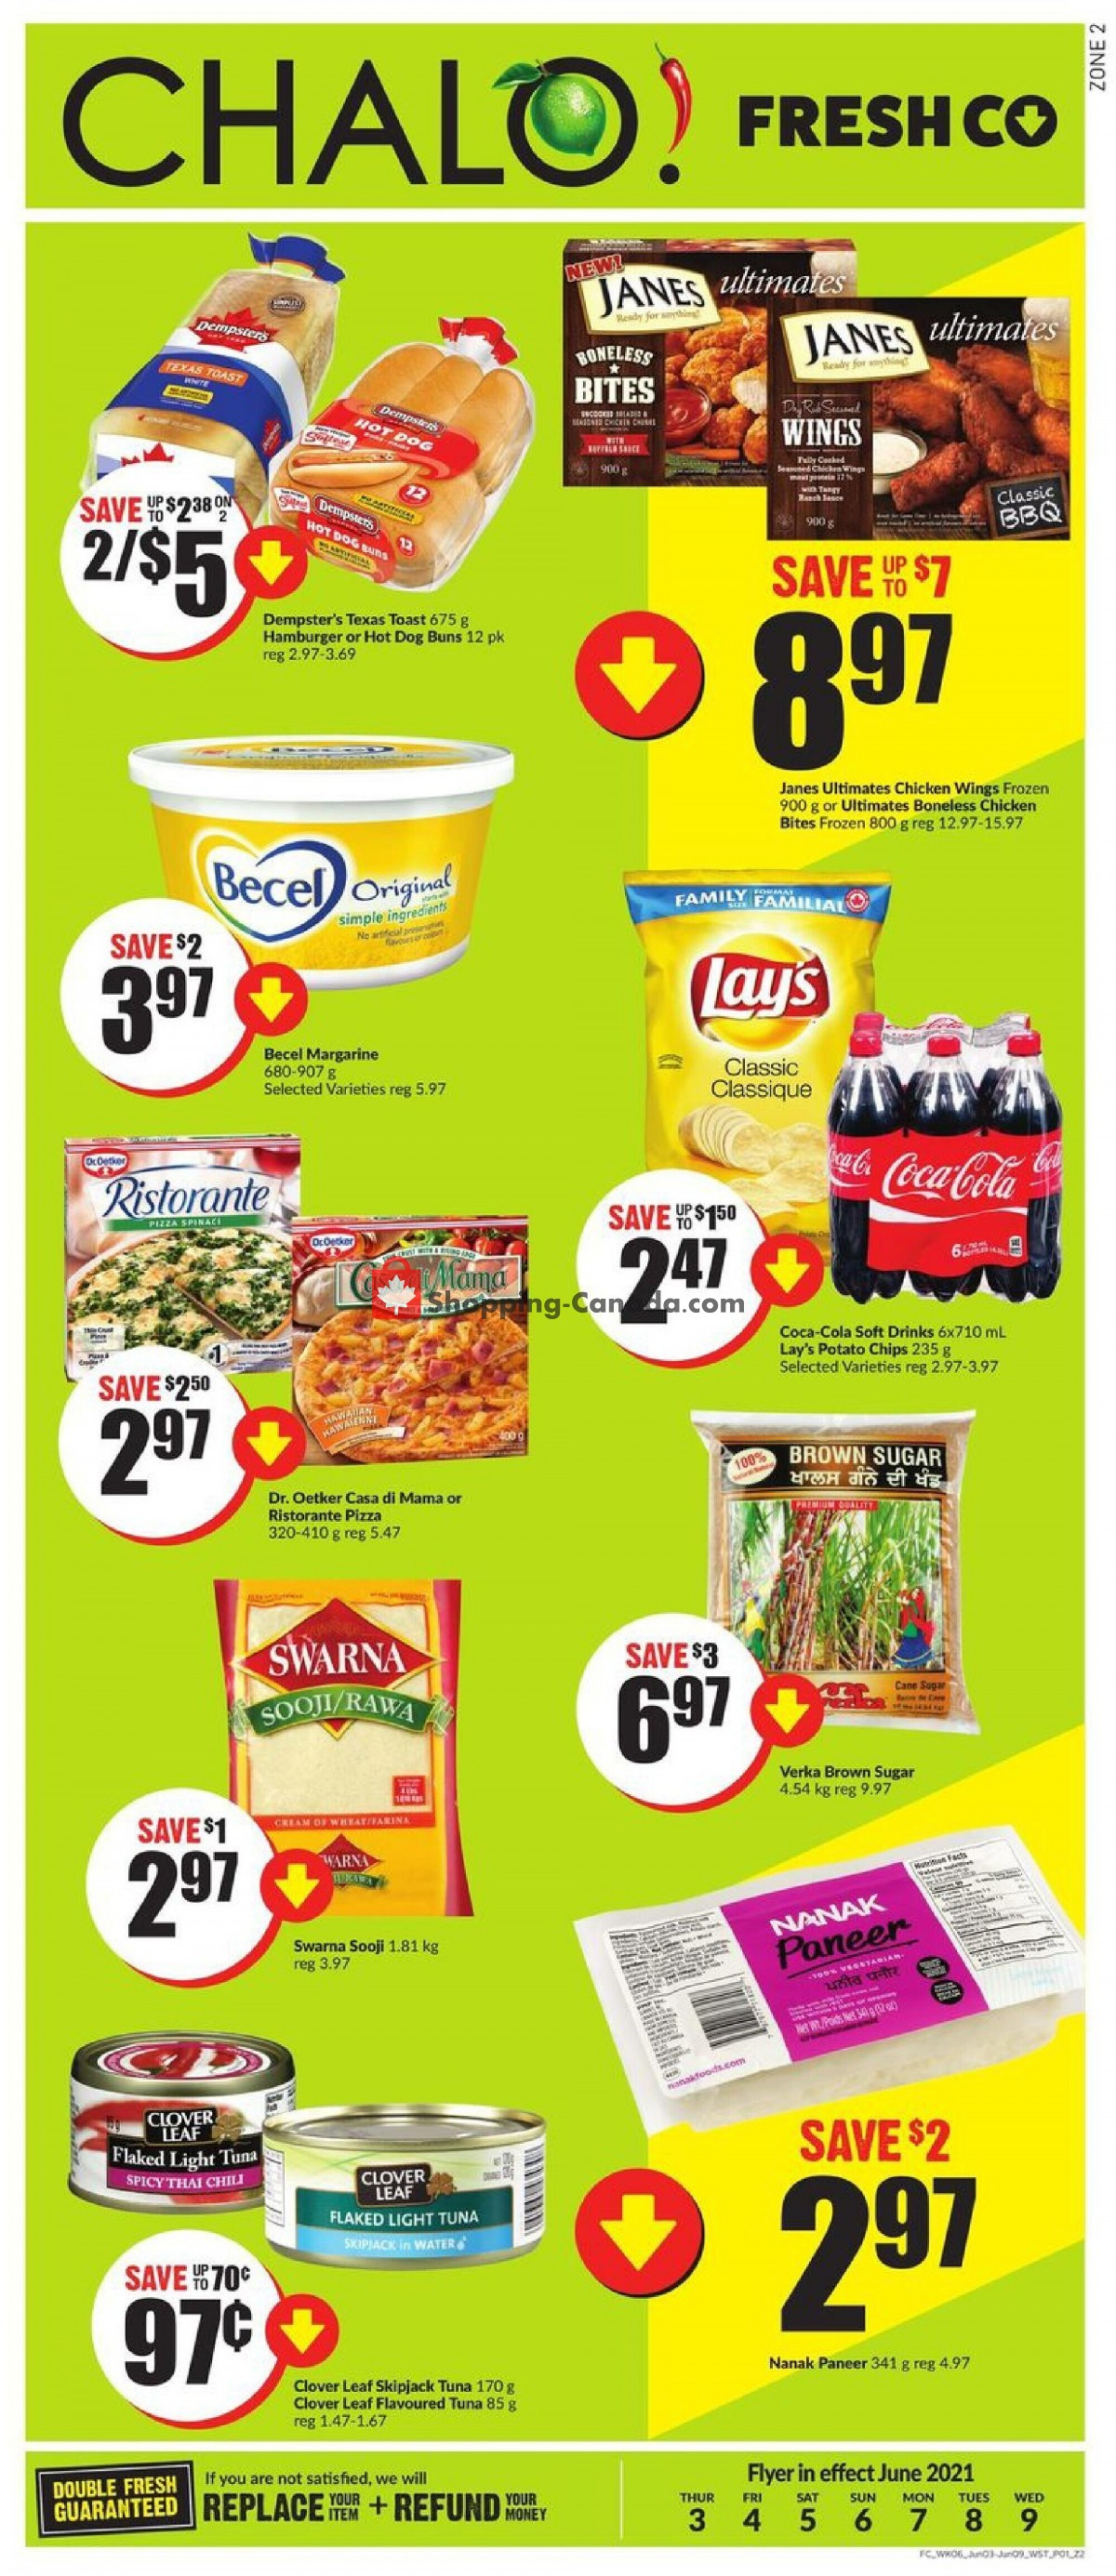 Flyer Chalo FreshCo Canada - from Thursday June 3, 2021 to Wednesday June 9, 2021